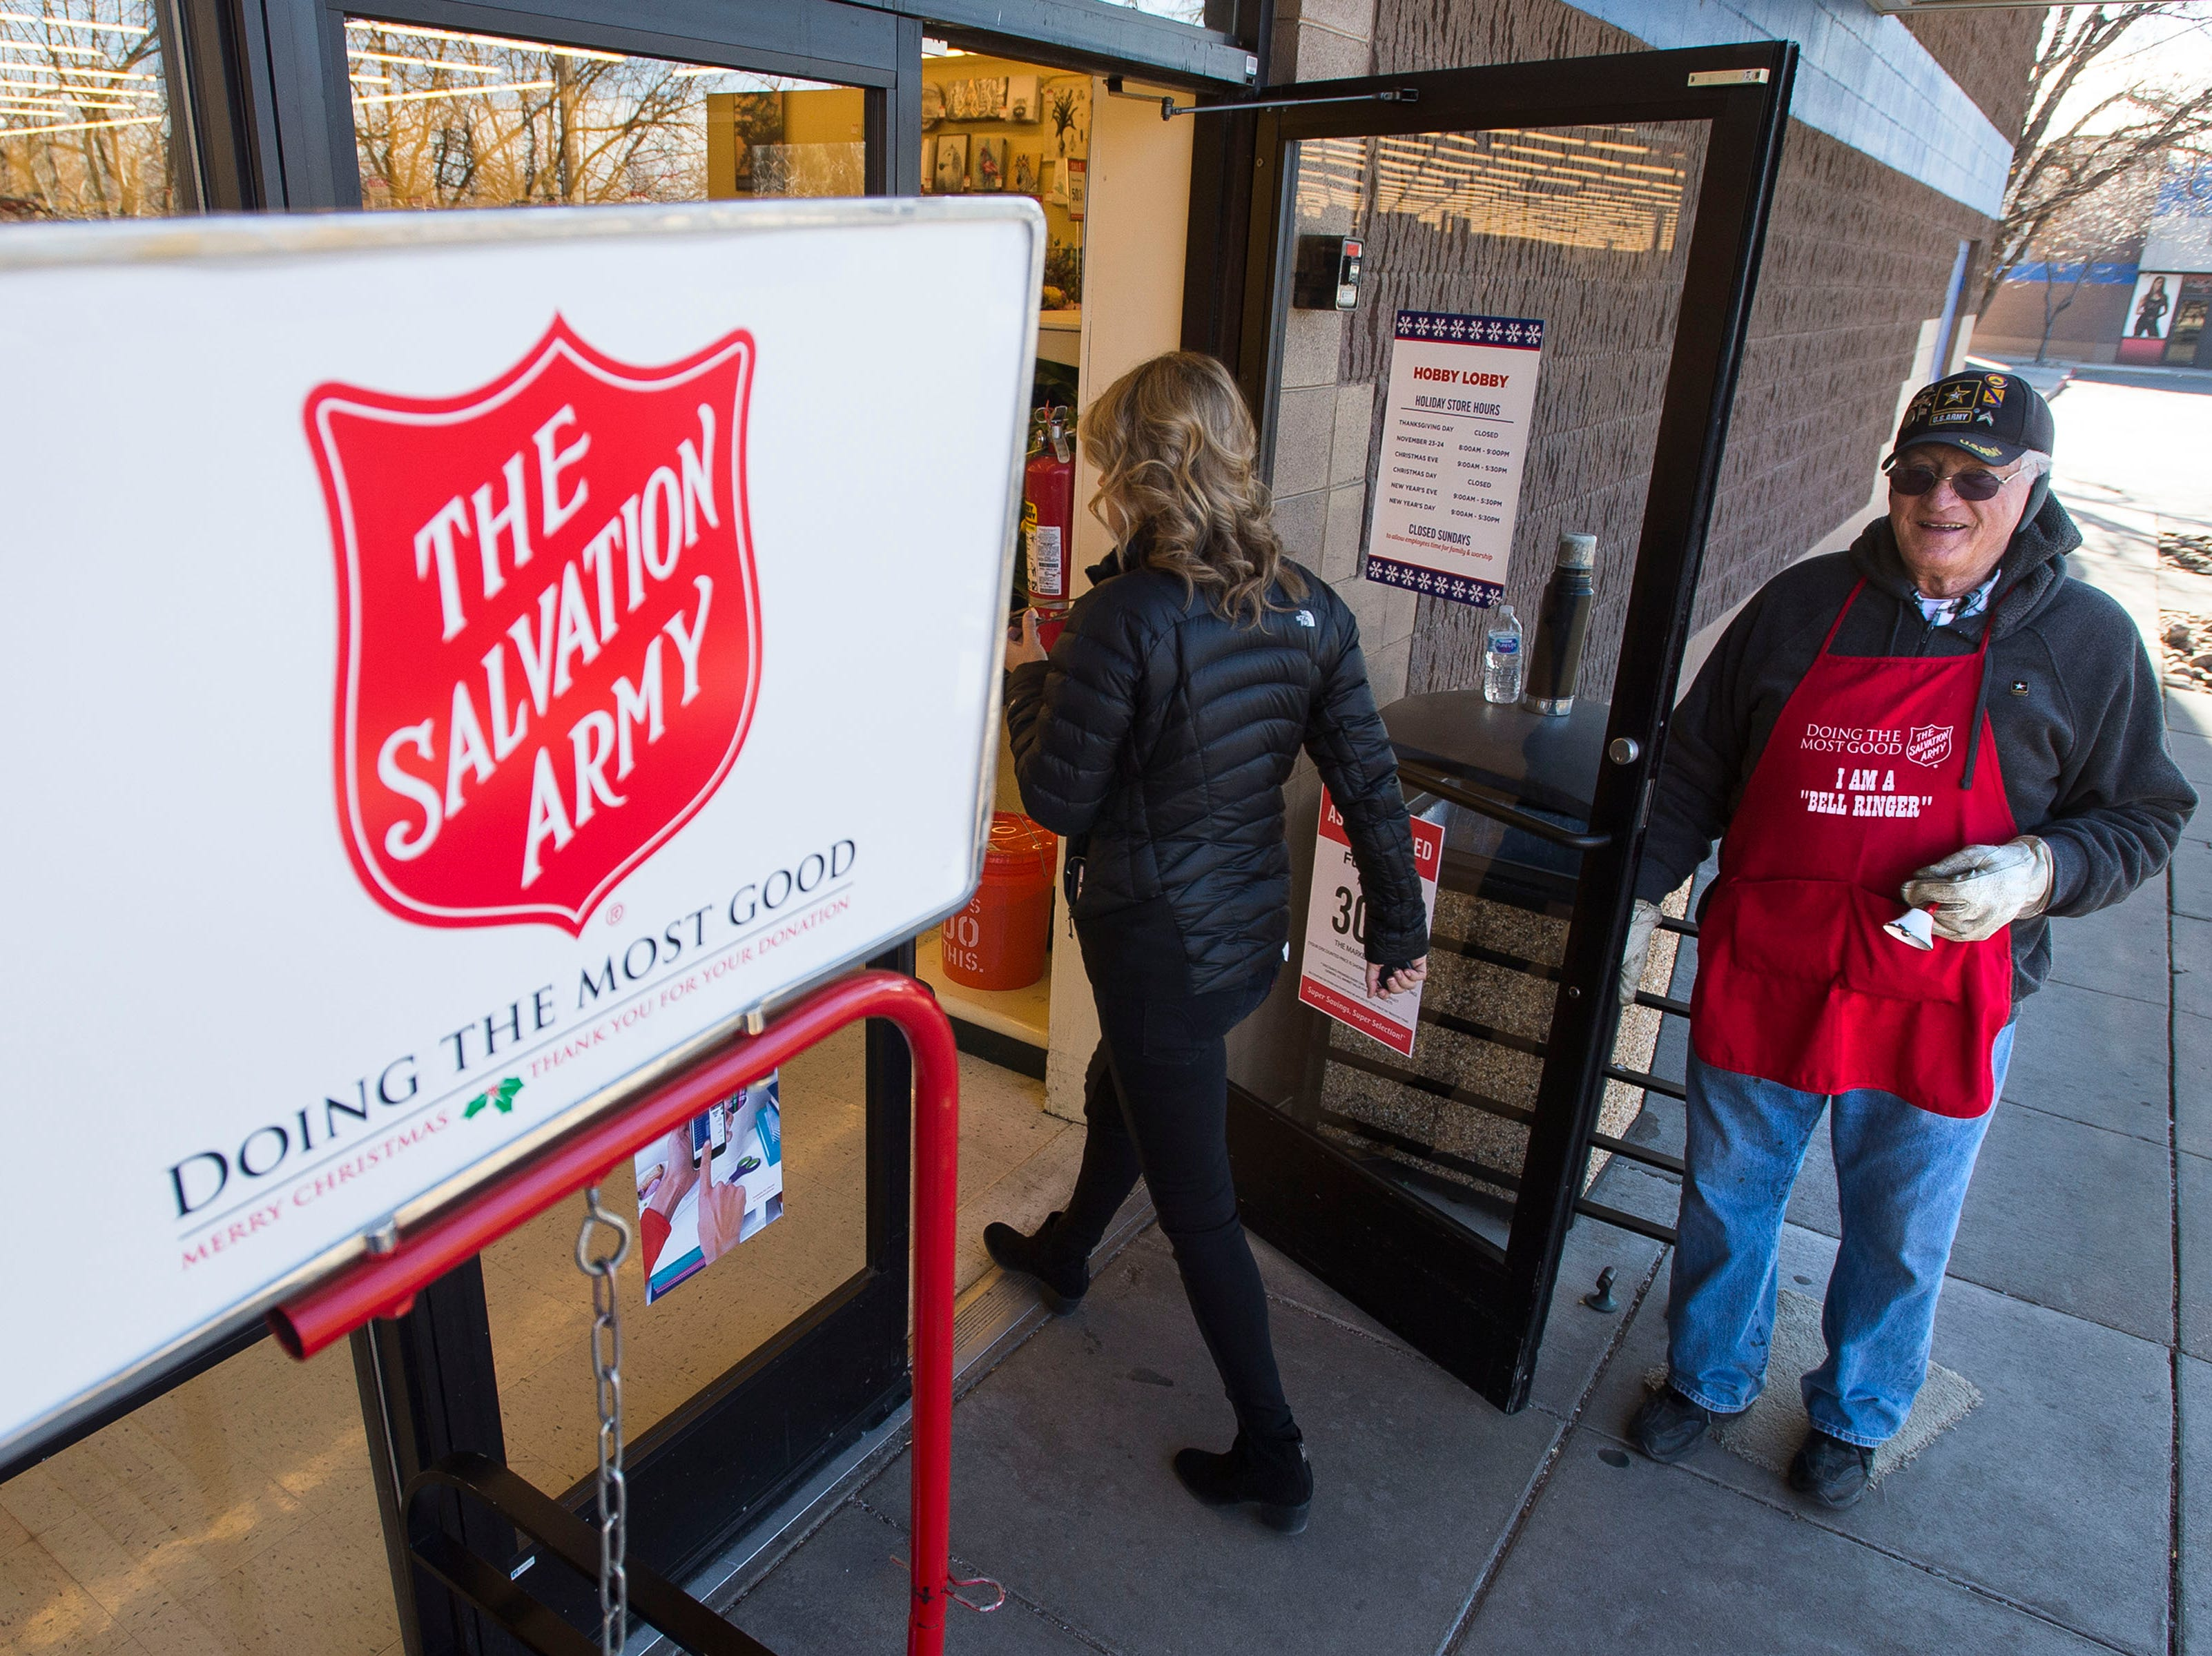 Salvation Army bell ringer Robert Thompson wishes a customer a merry Christmas as he hold the door open on Friday, Dec. 21, 2018, in front of the Hobby Lobby on South College Avenue in Fort Collins, Colo.